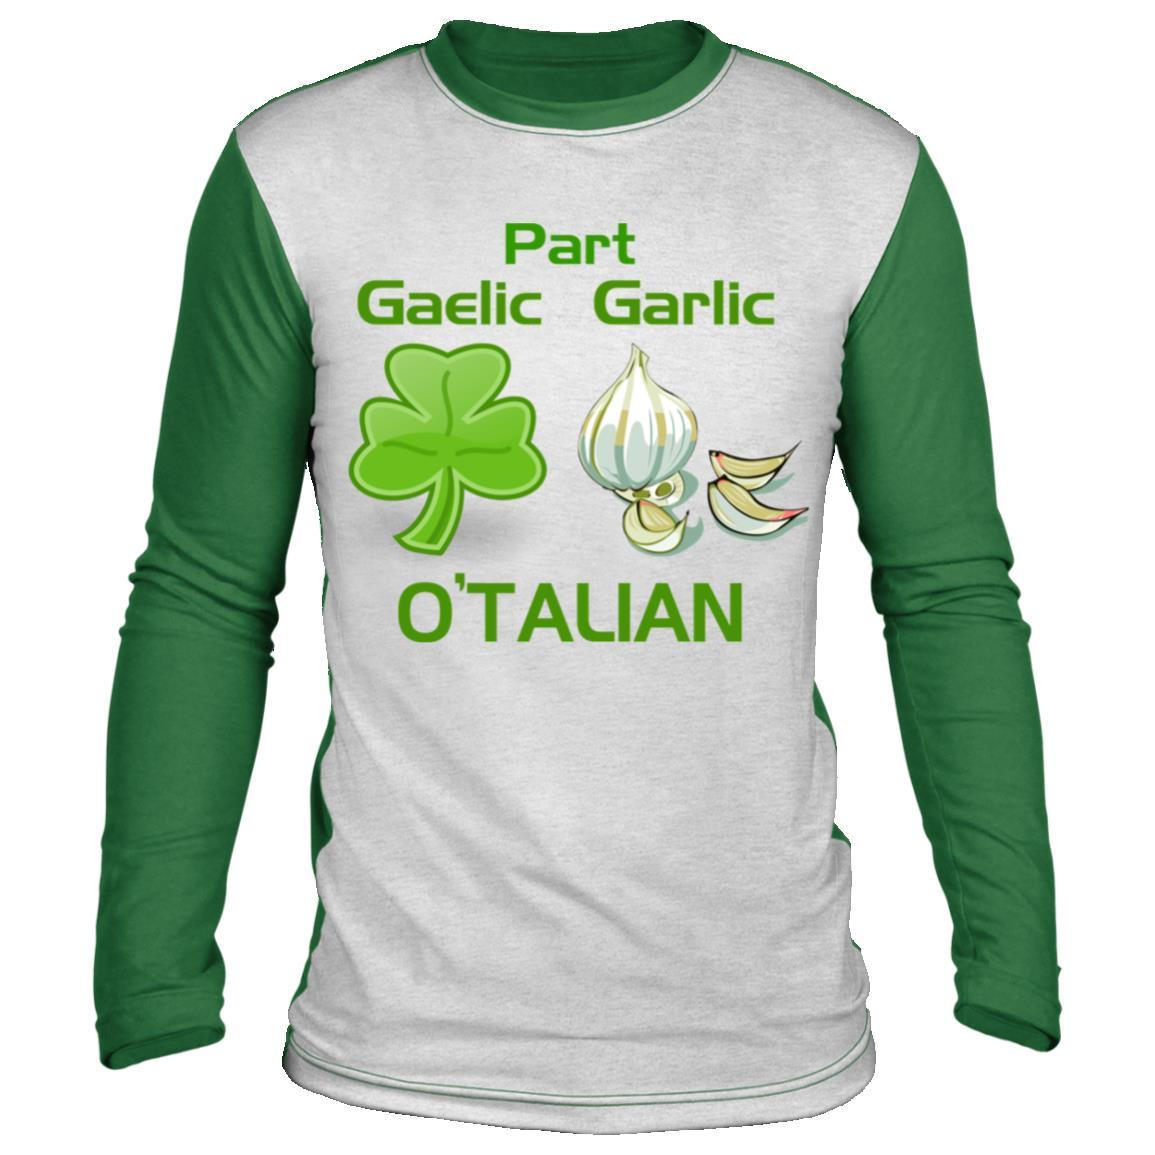 O'Talian Gaelic Garlic Long Sleeve Shirt